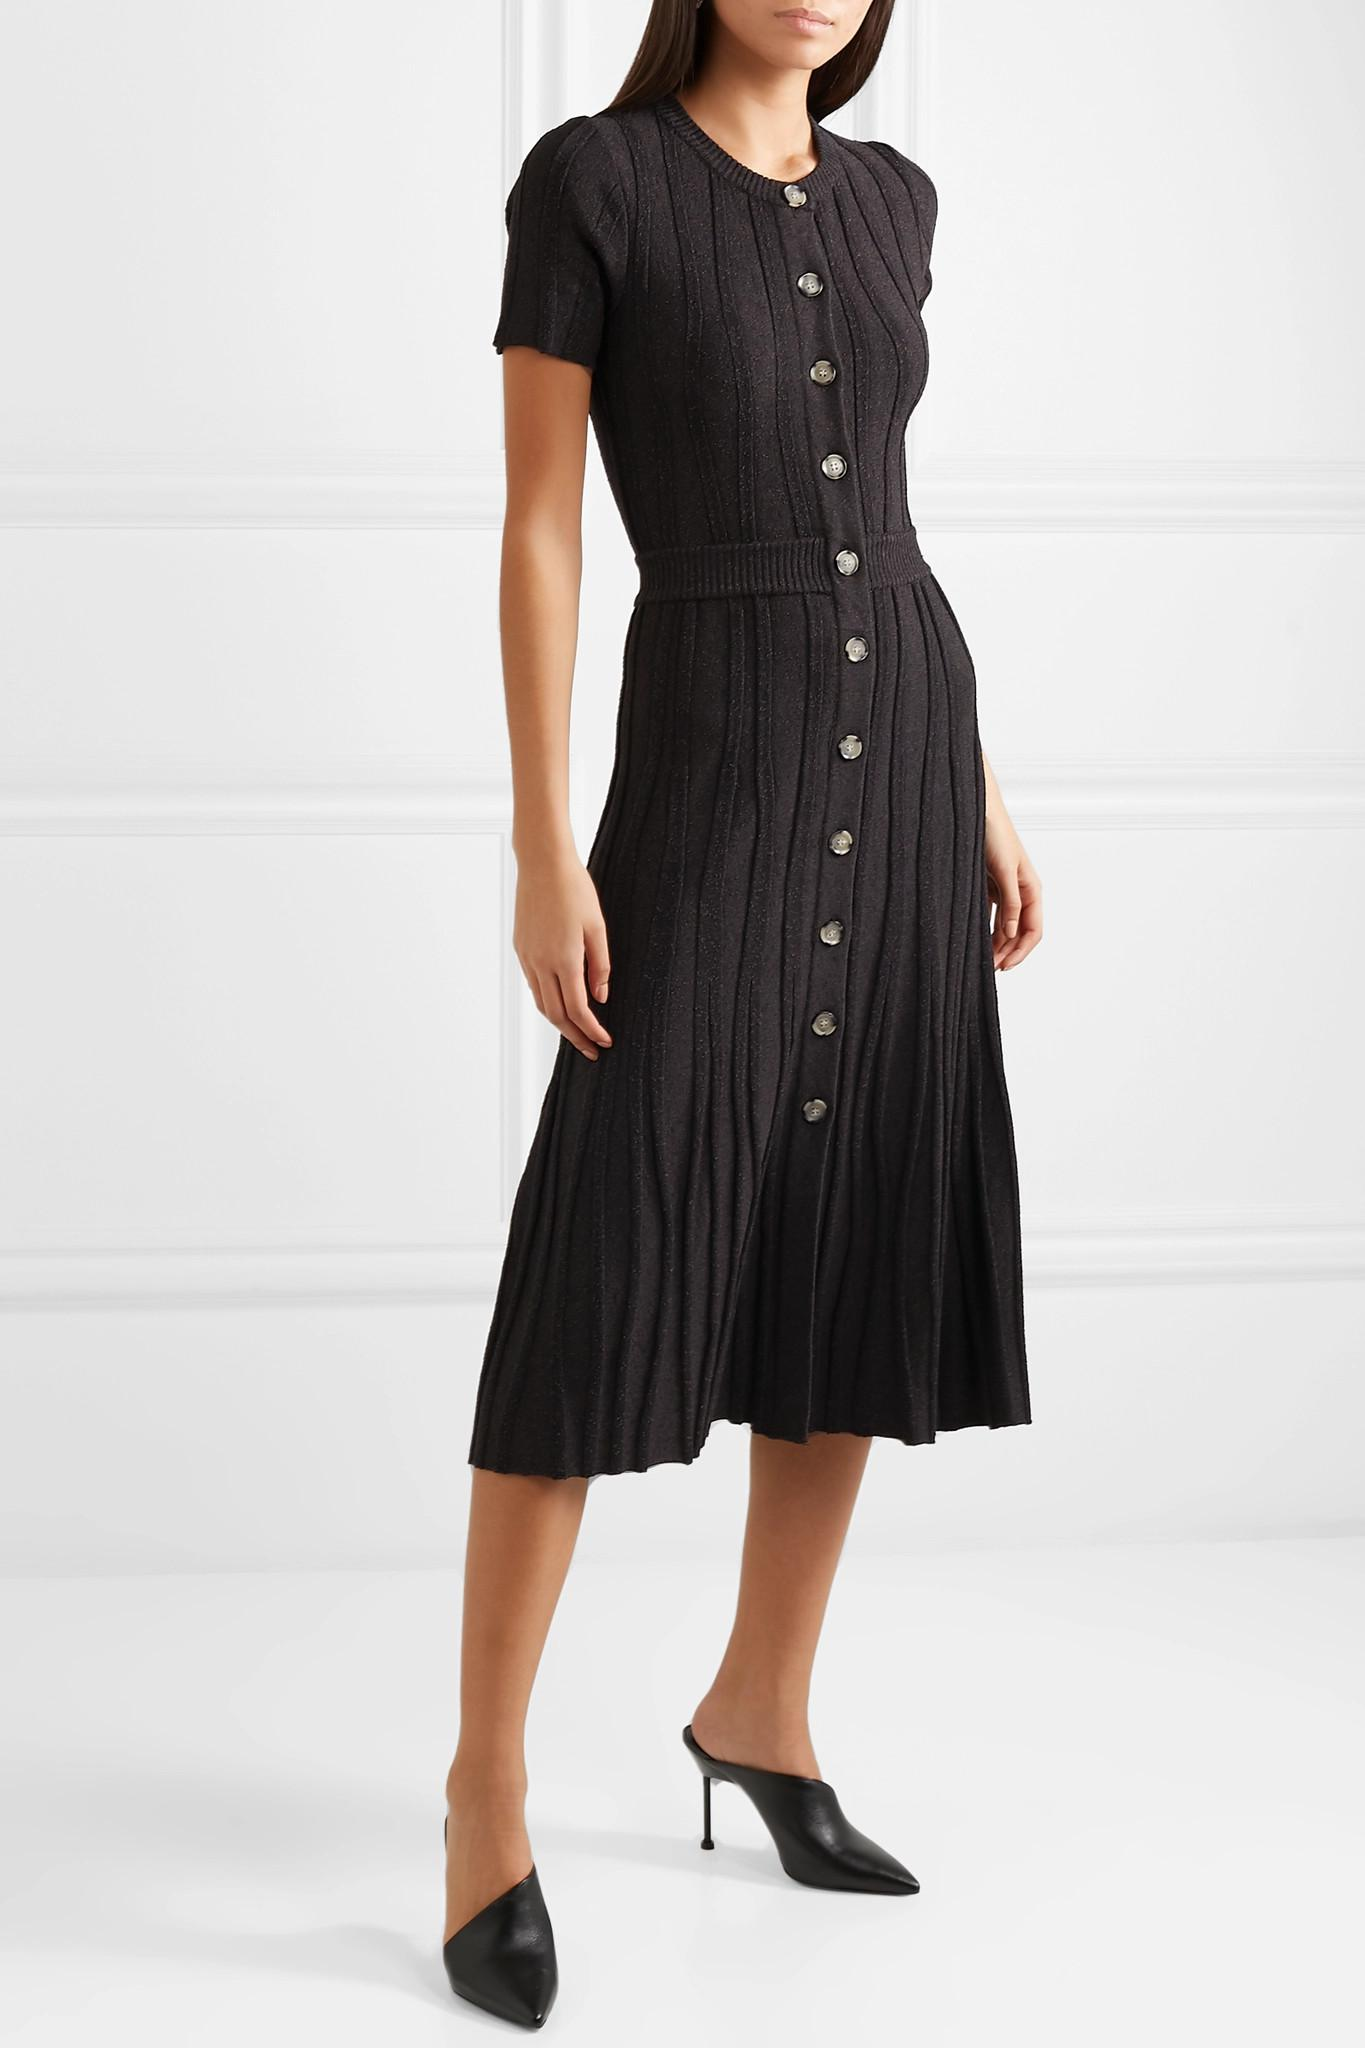 e28f7e6a3a2f Altuzarra - Black Abelia Ribbed Stretch-knit Midi Dress - Lyst. View  fullscreen